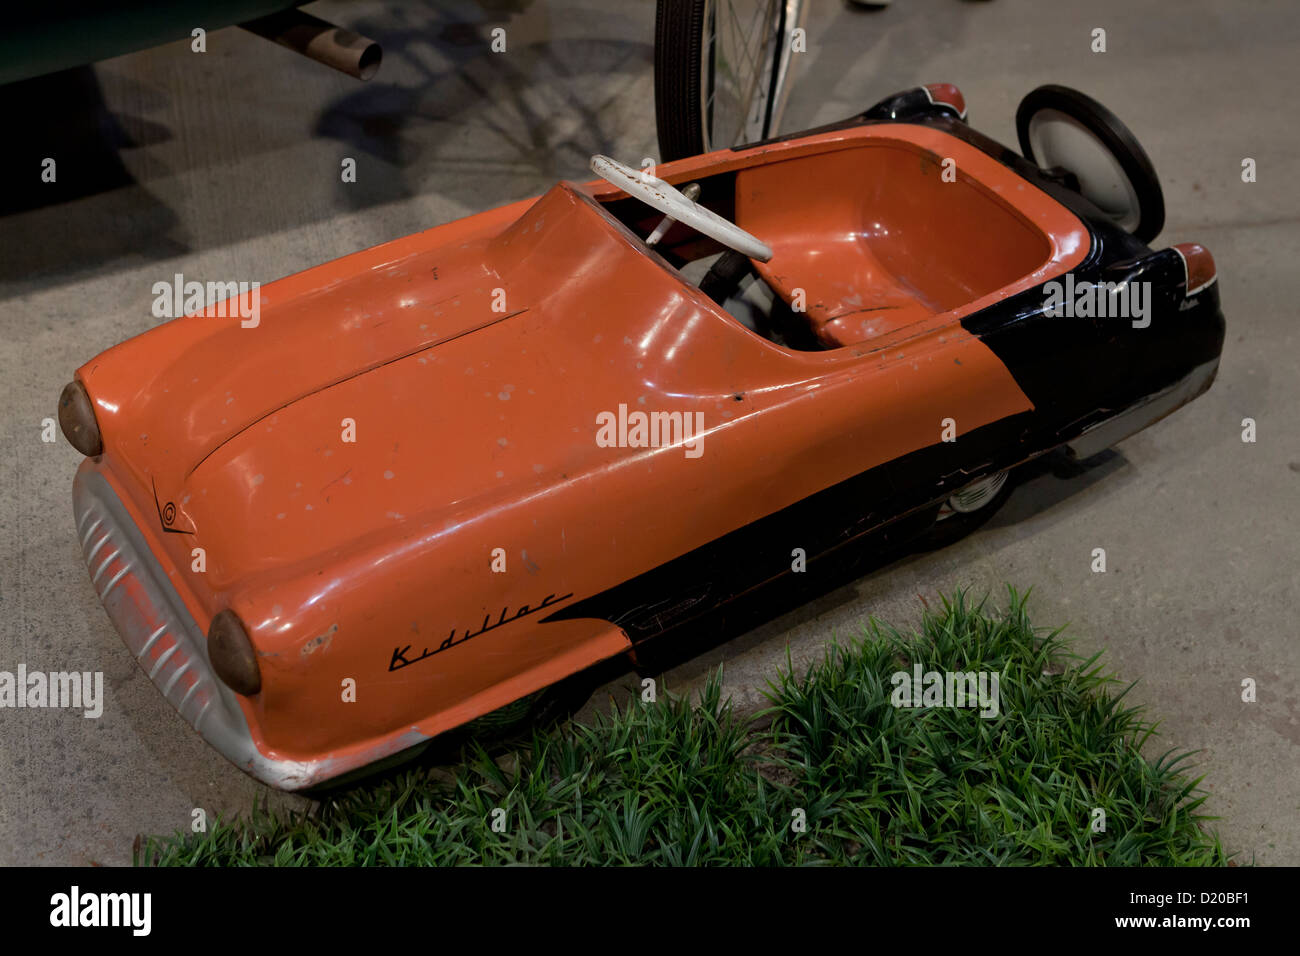 1950s vintage kid's pedal car toy - Stock Image